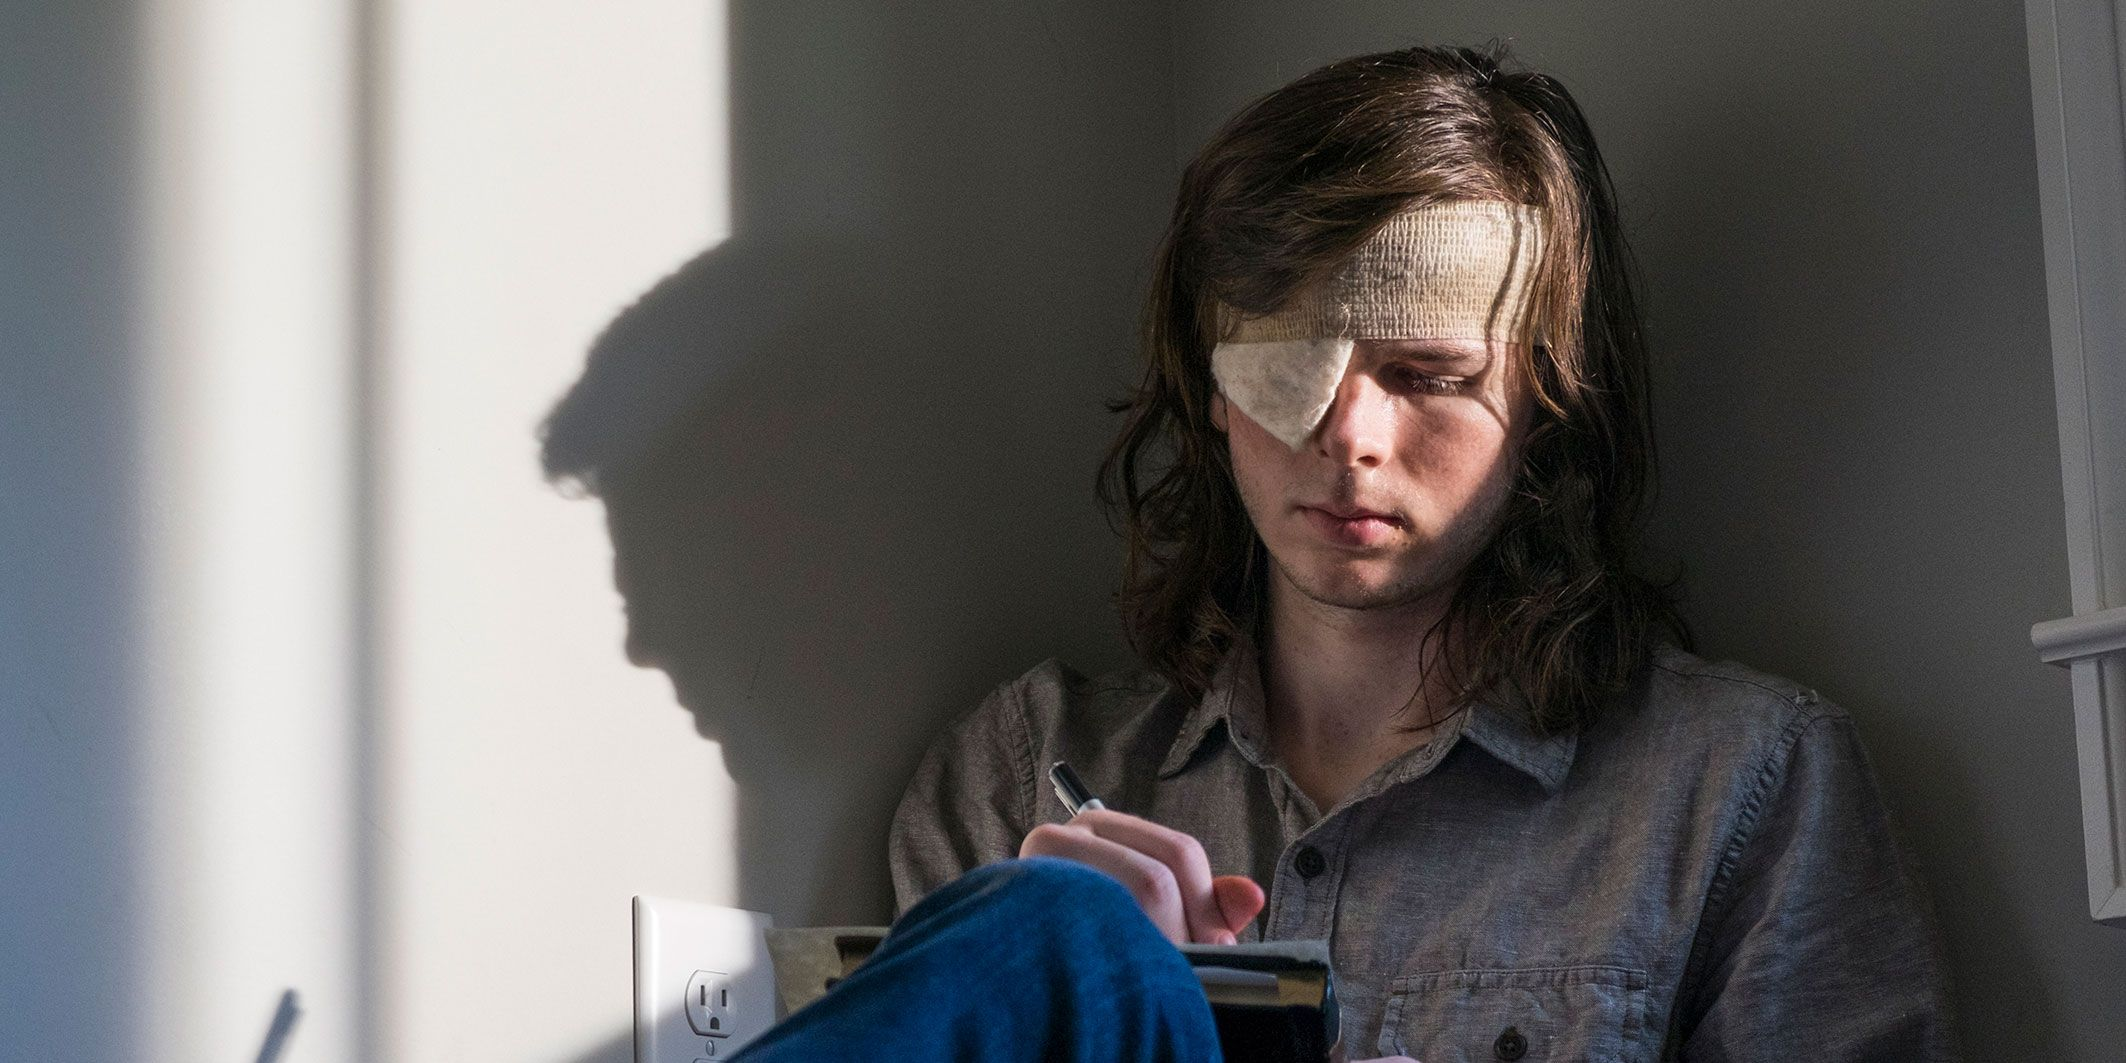 The Walking Dead, Season 8, Carl Grimes played by Chandler Riggs